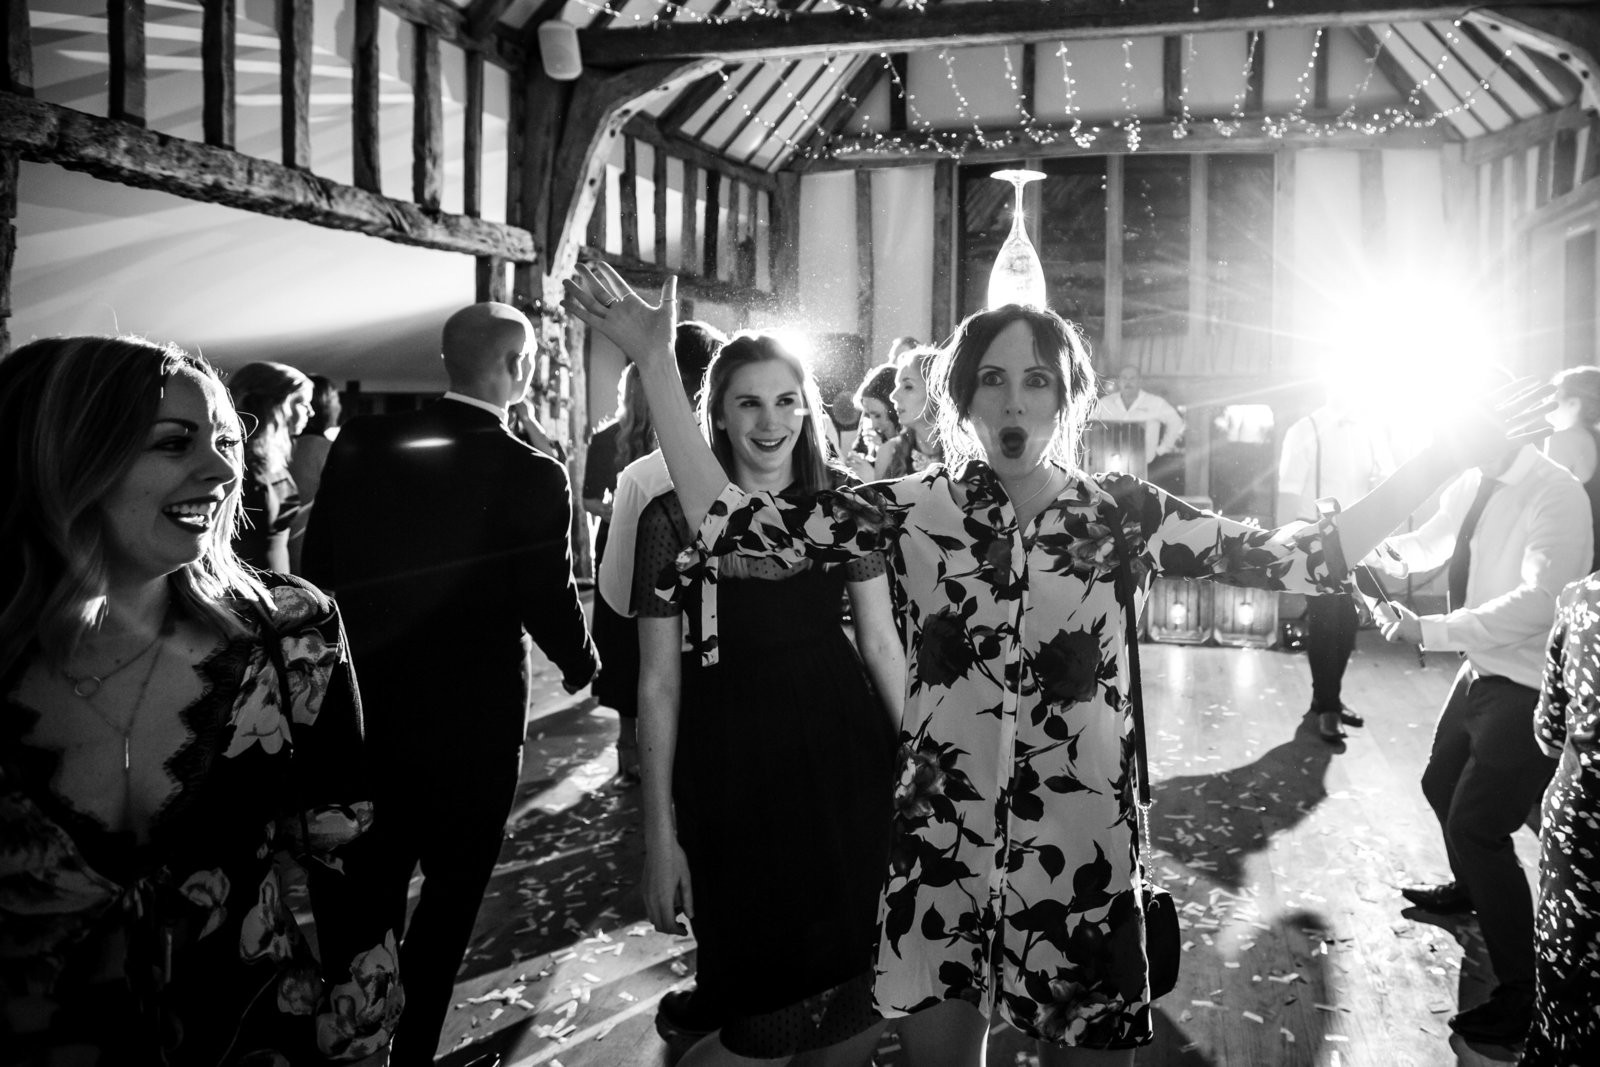 A Happy lady guest balances a wine glass on her head during the dancing at a wedding